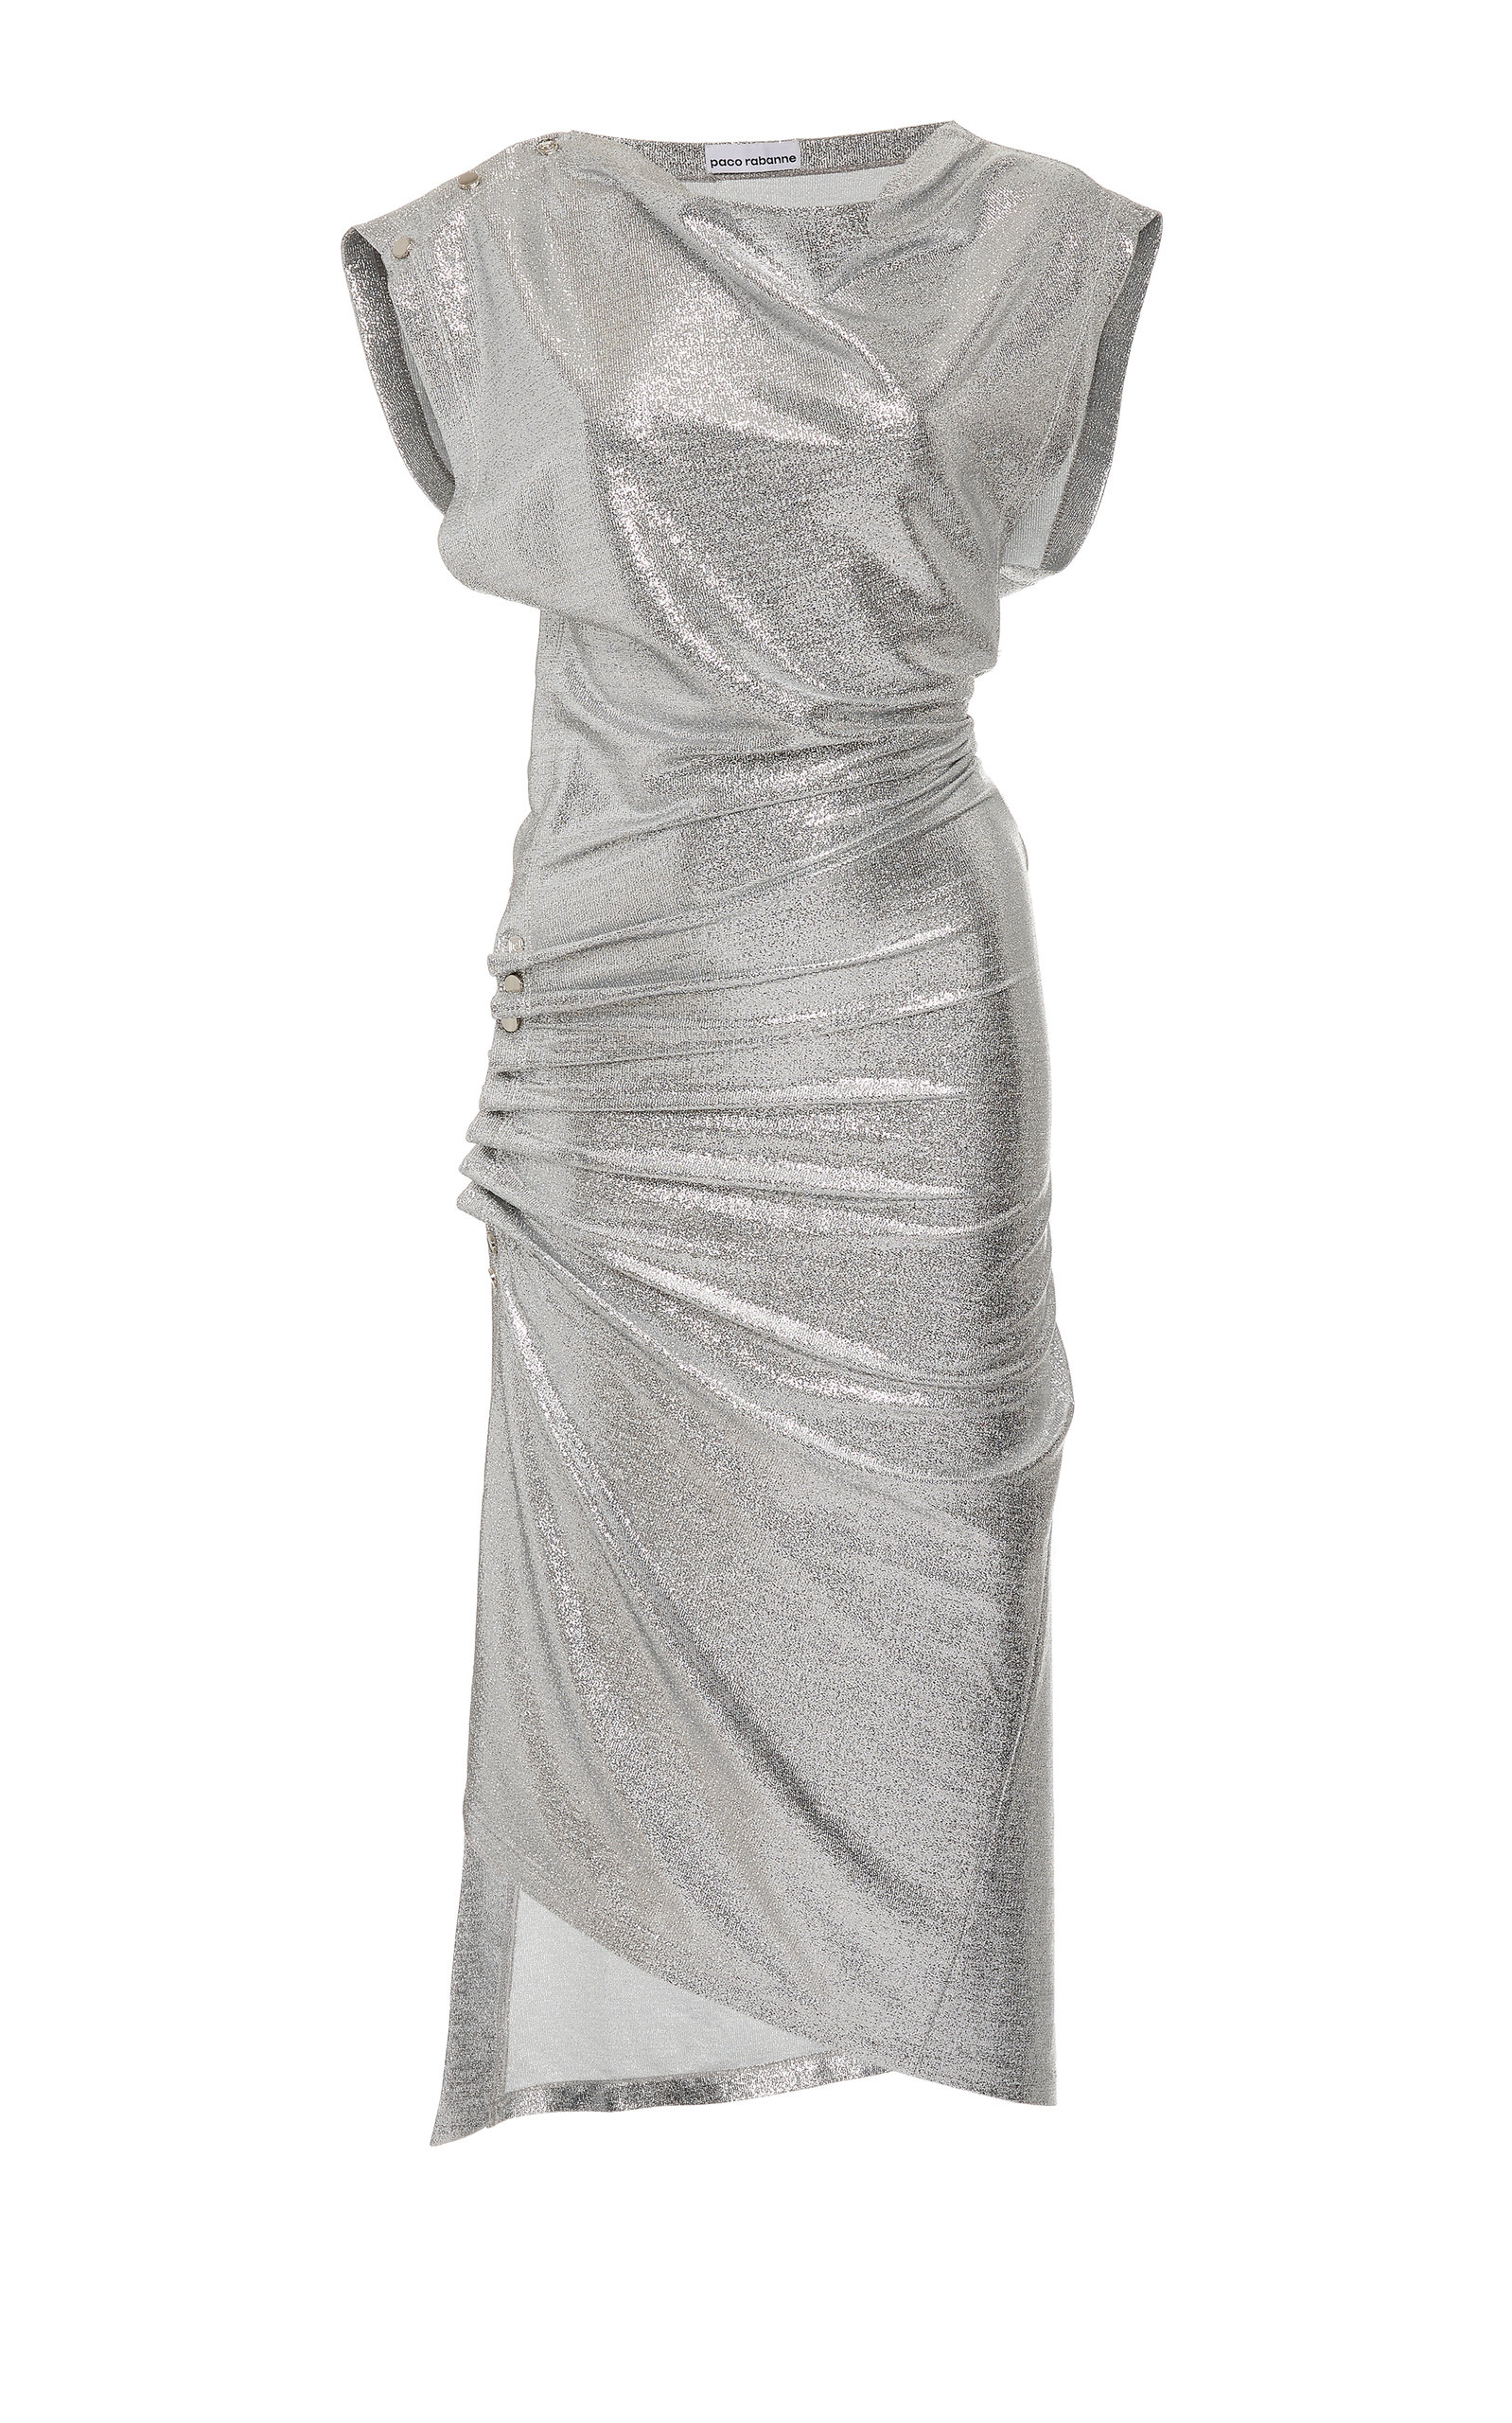 Buy Paco Rabanne Draped Metallic Midi Dress online, shop Paco Rabanne at the best price